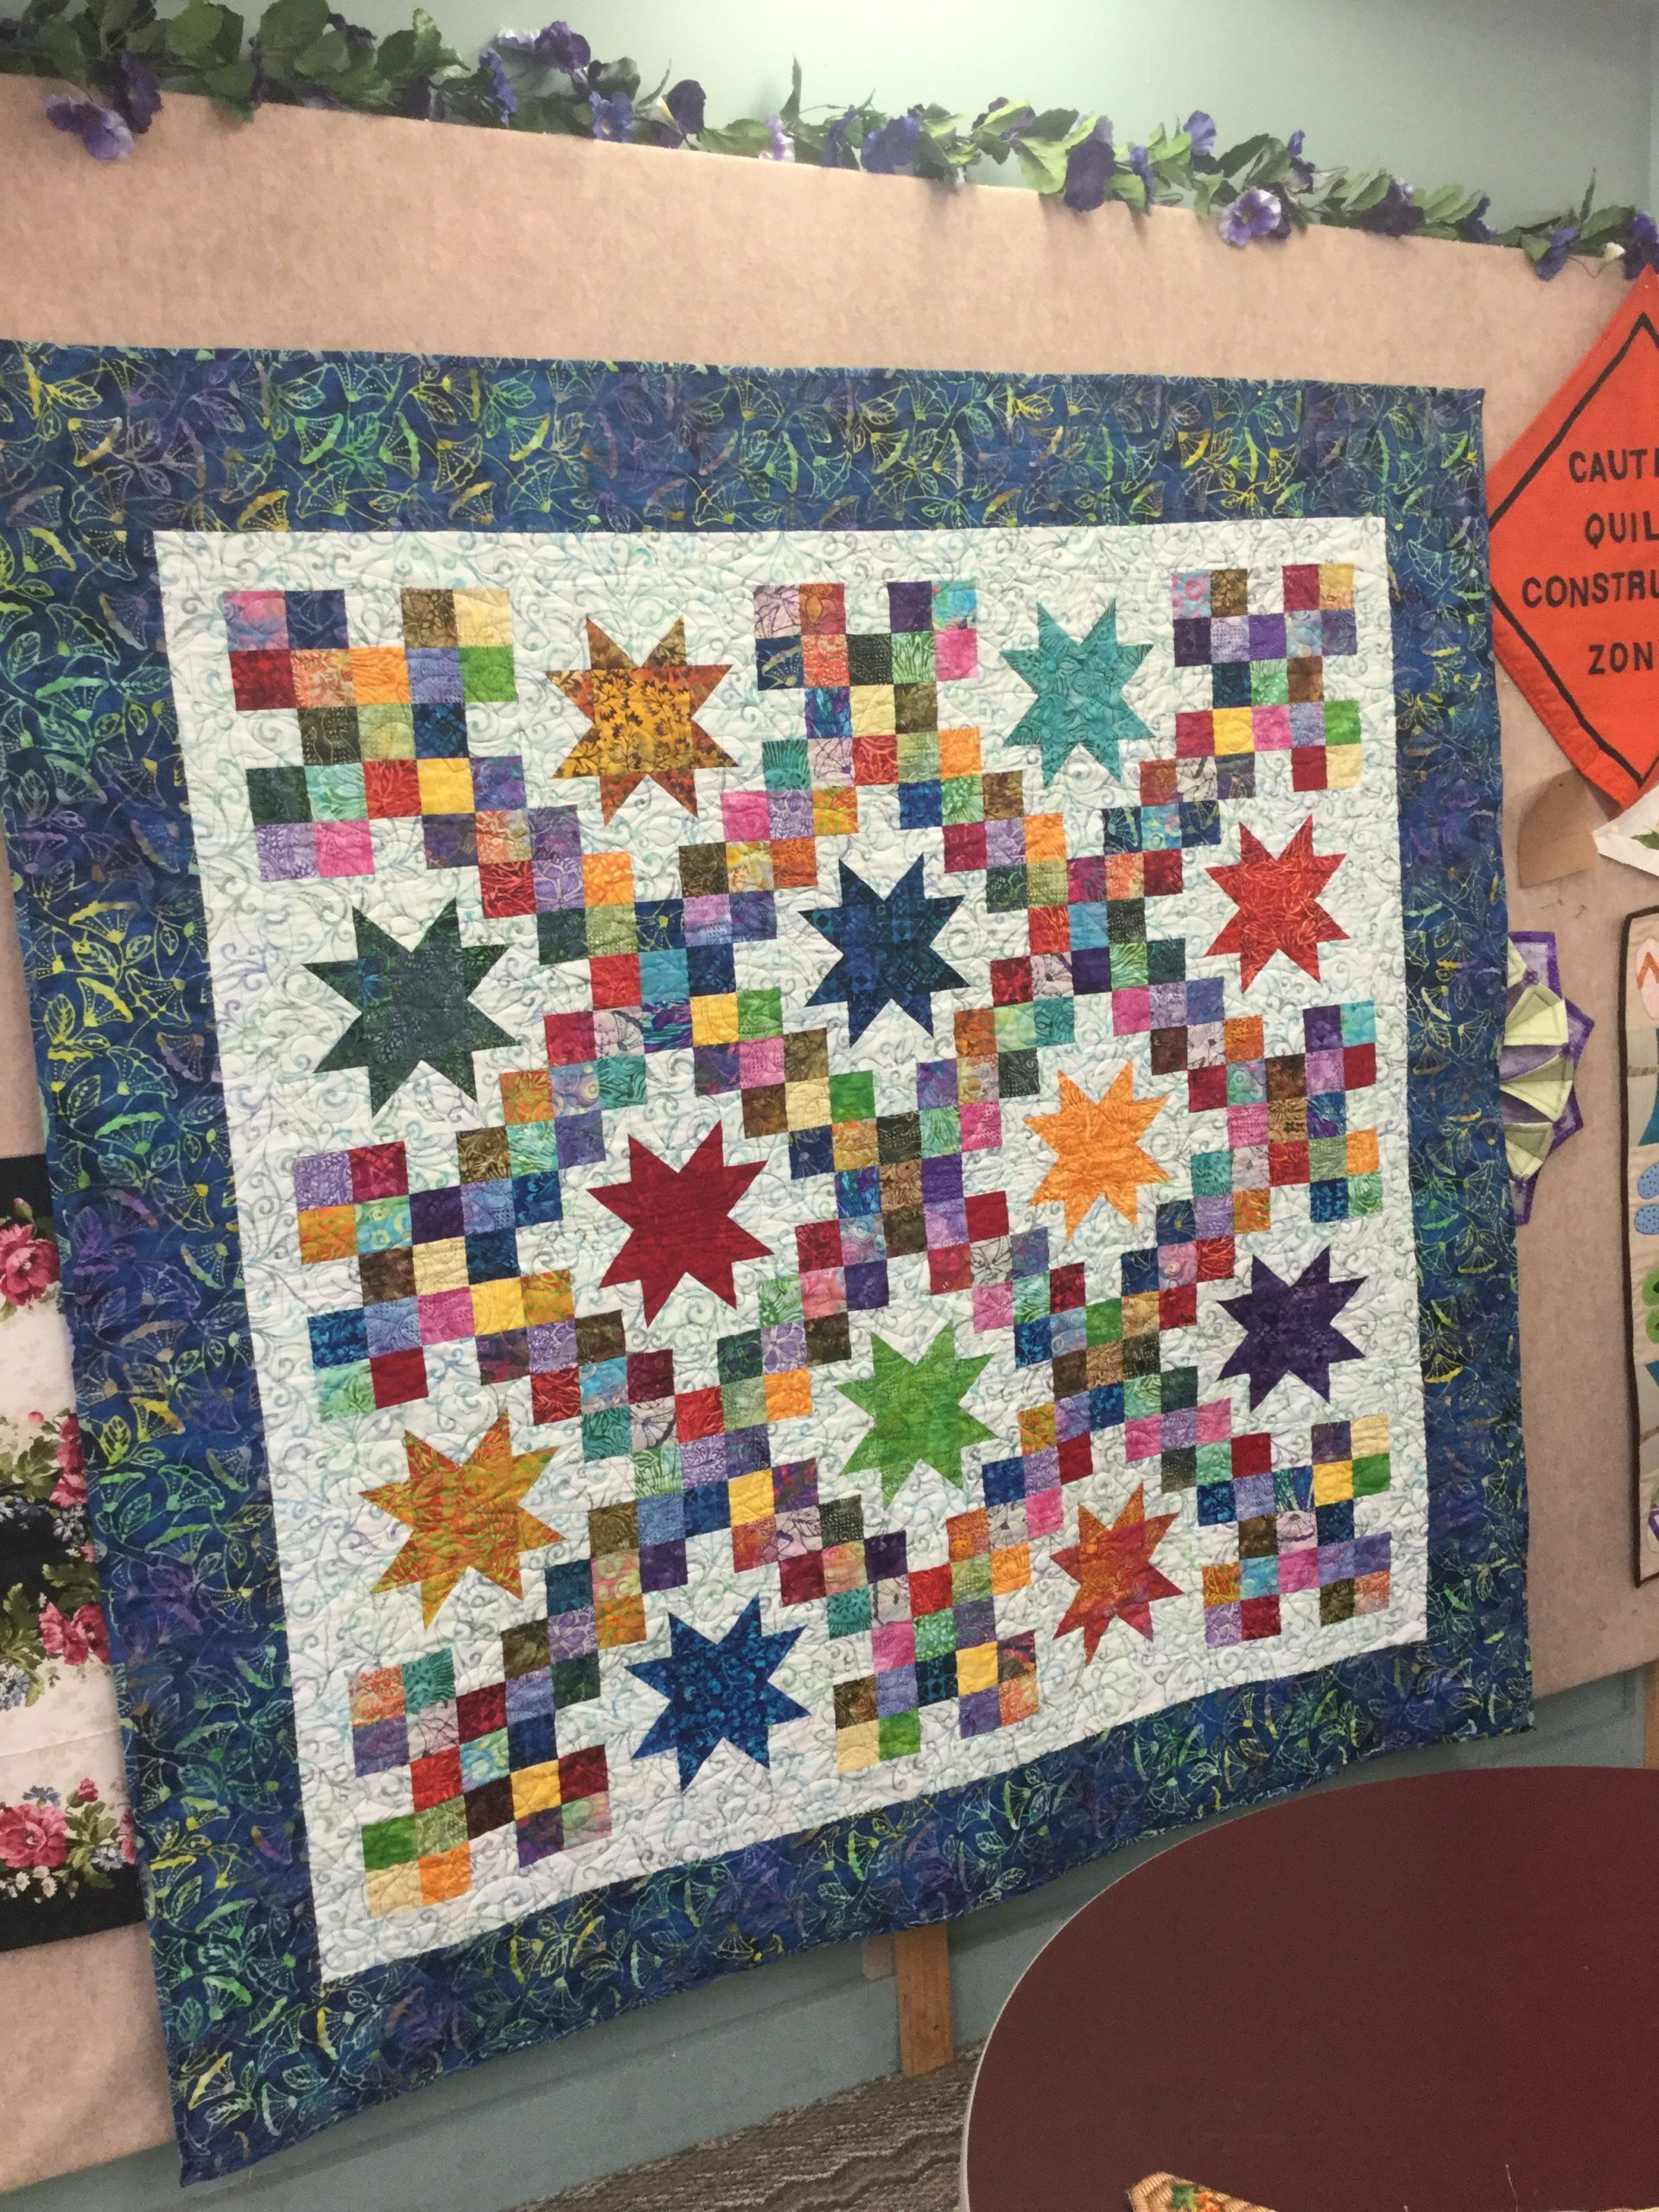 12 Days of Christmas at Paradise Quilting!